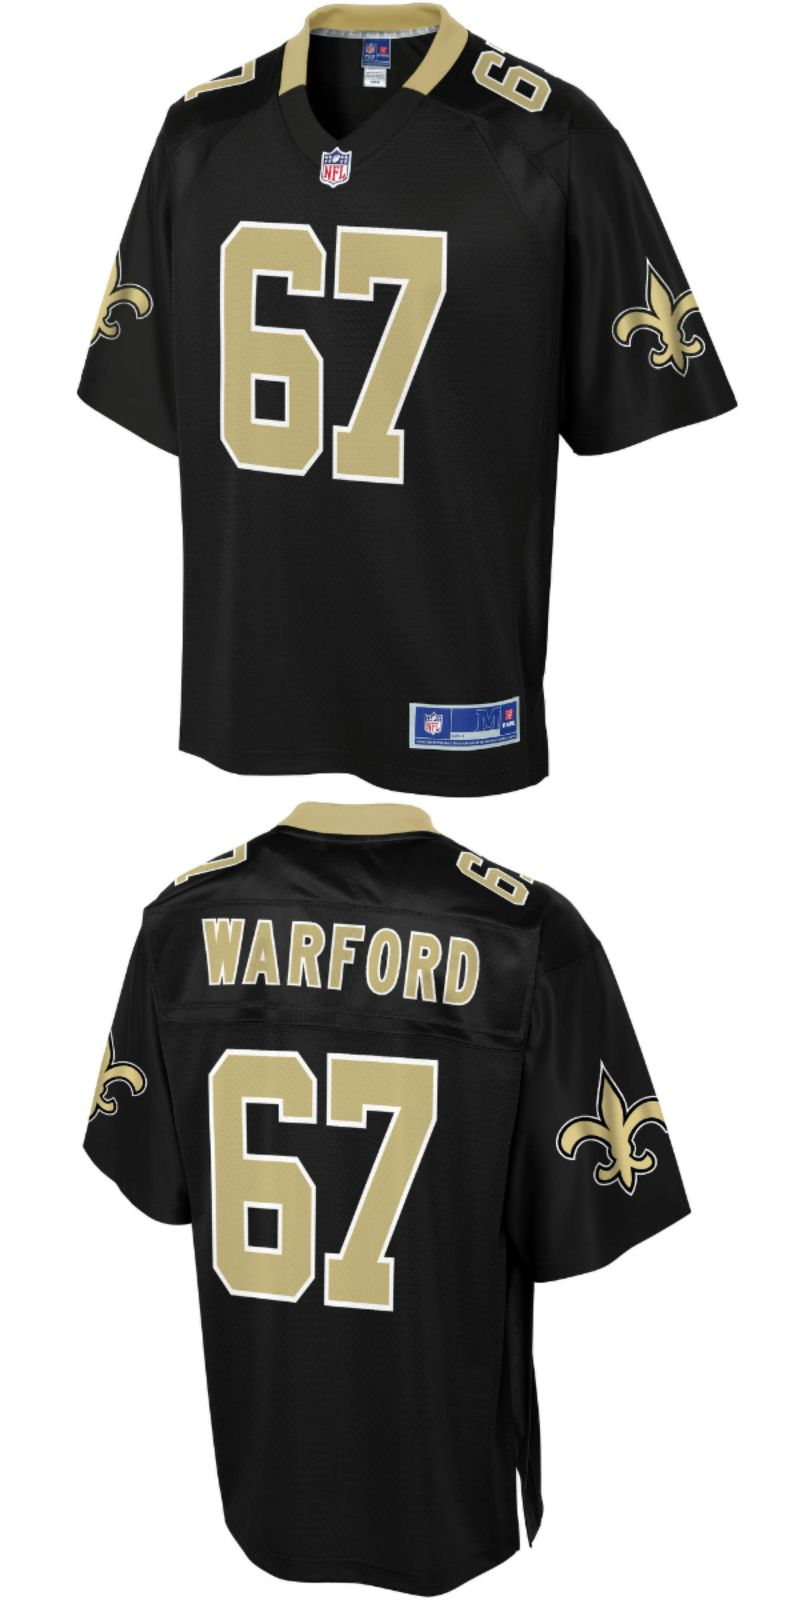 detailed look d5654 e15a3 收藏到 NFL New Orleans Saints Jersey